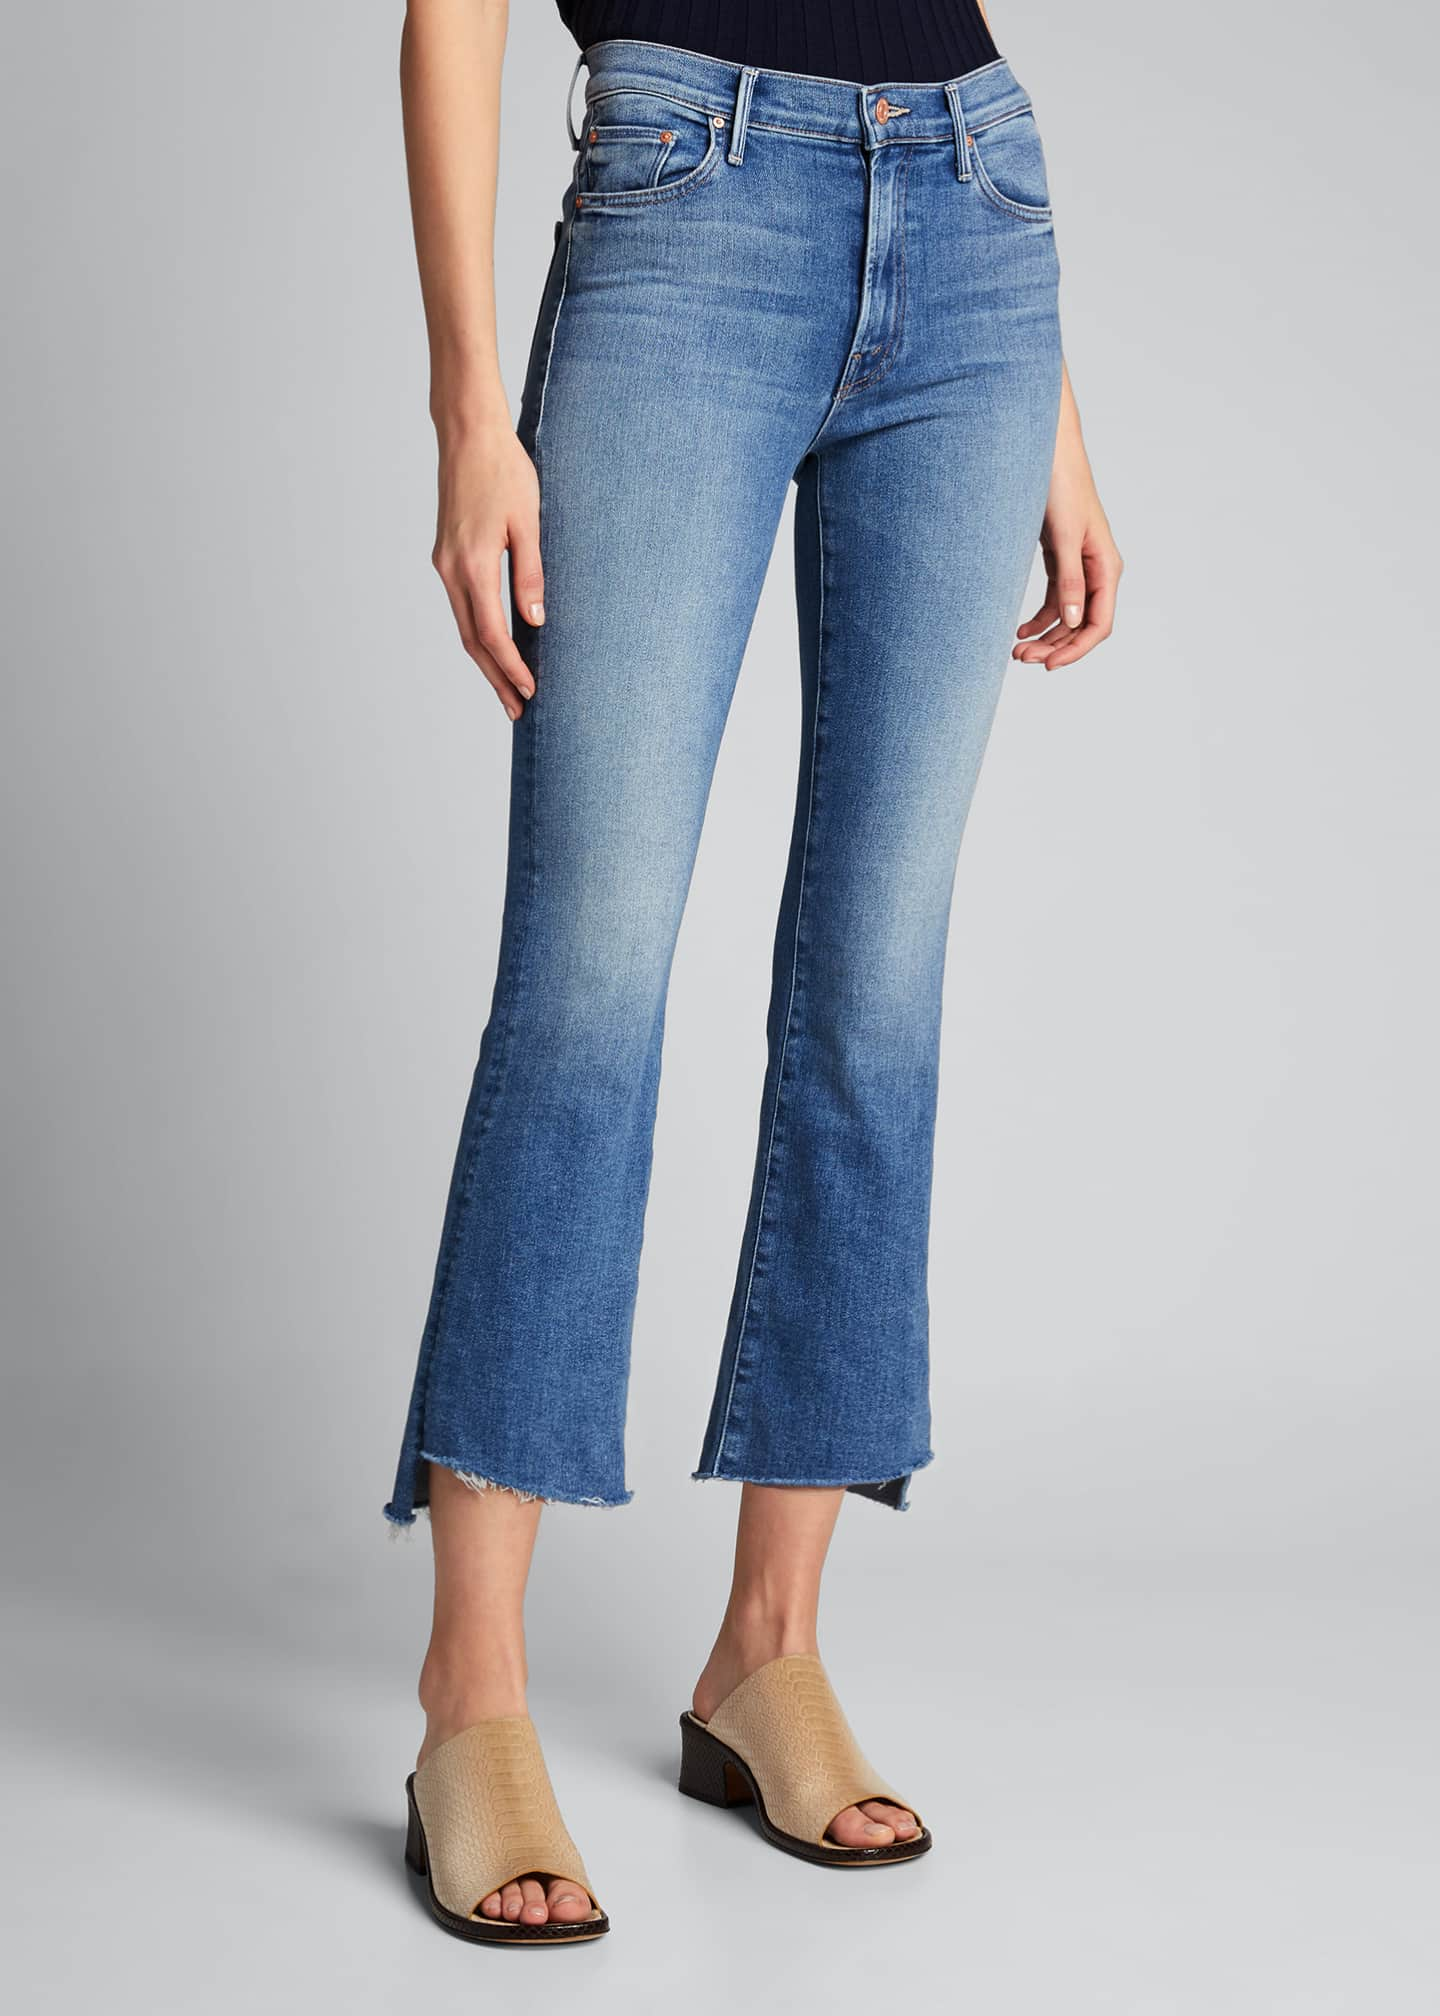 Image 3 of 5: The Insider Crop Step Fray Jeans